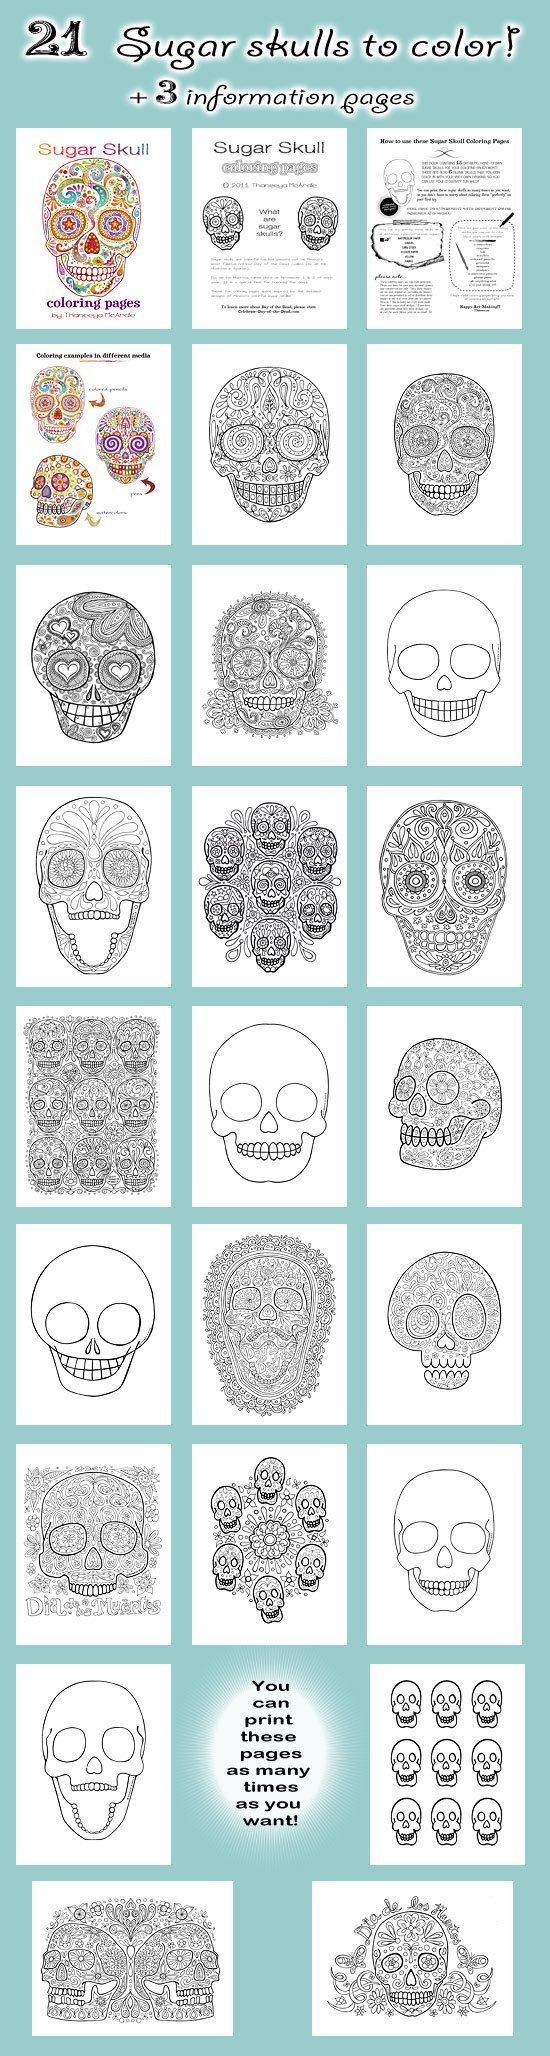 Sugar Skull Coloring Pages Not Free But Once You Have It Can Print However Many Times Want